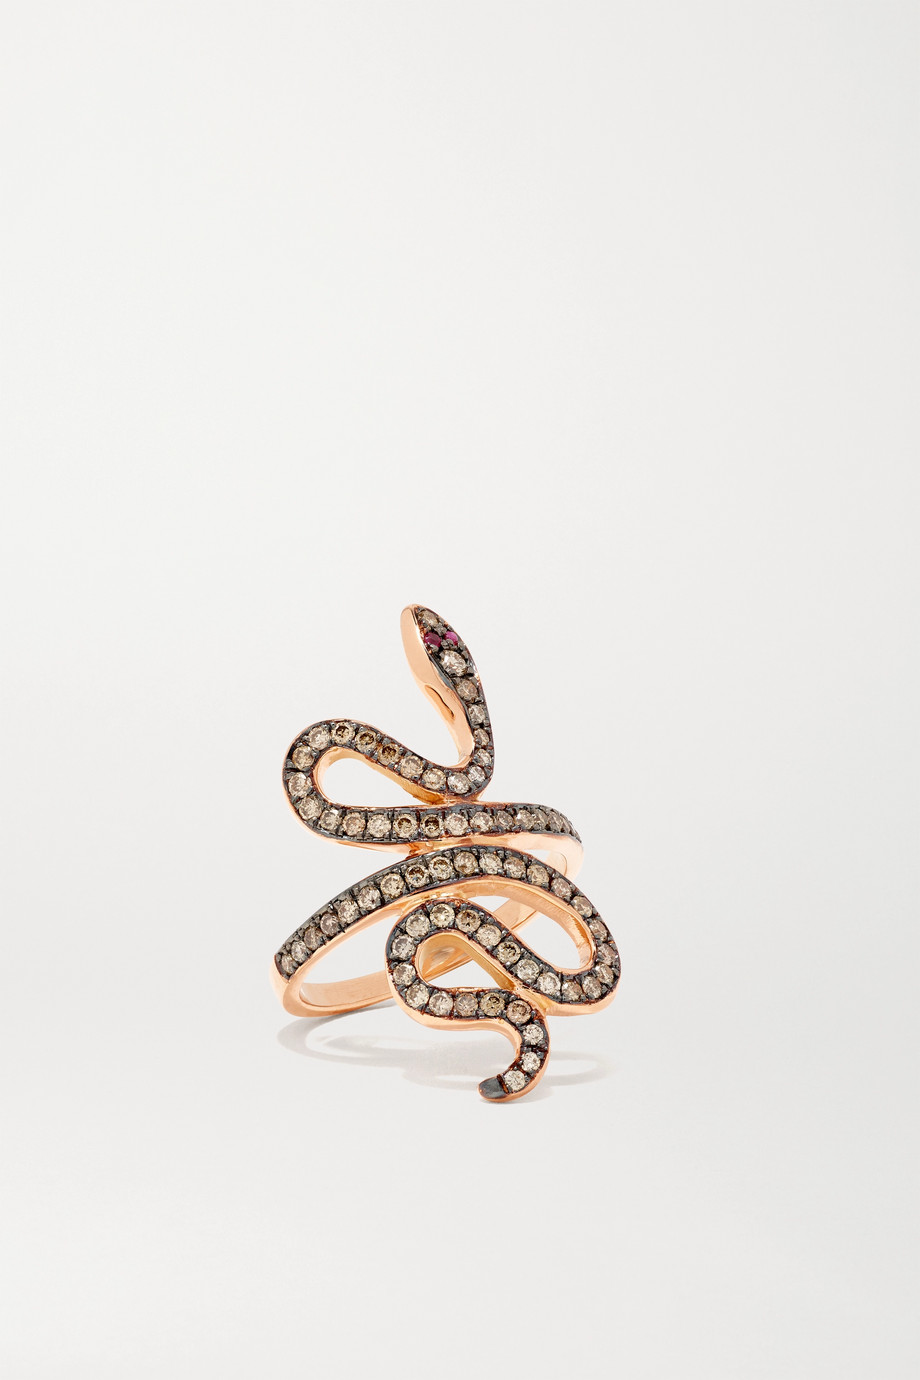 Ileana Makri Slither 18-karat rose gold, diamond and ruby ring